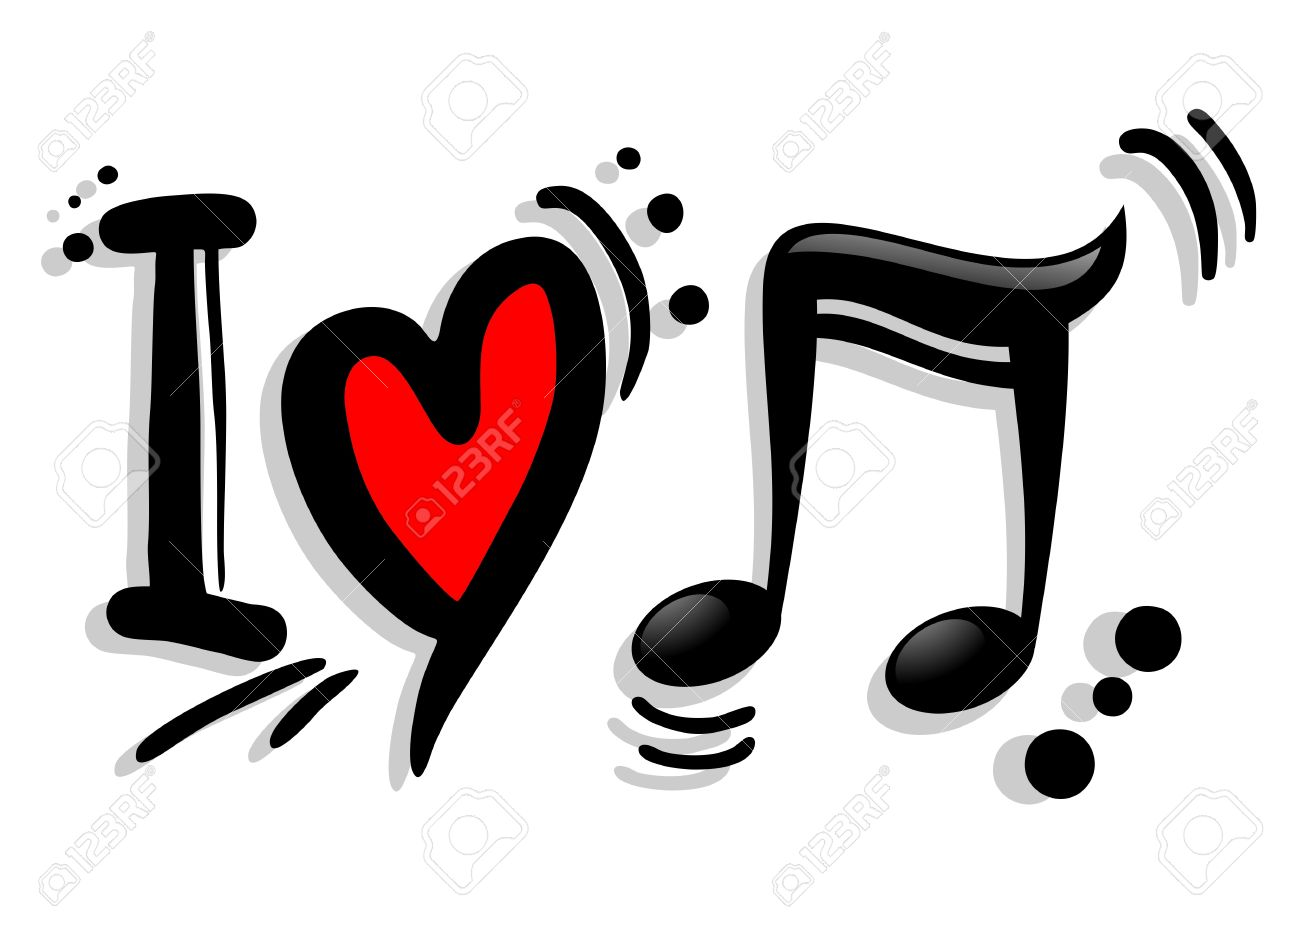 I love music symbol royalty free cliparts vectors and stock i love music symbol stock vector 19993638 biocorpaavc Images